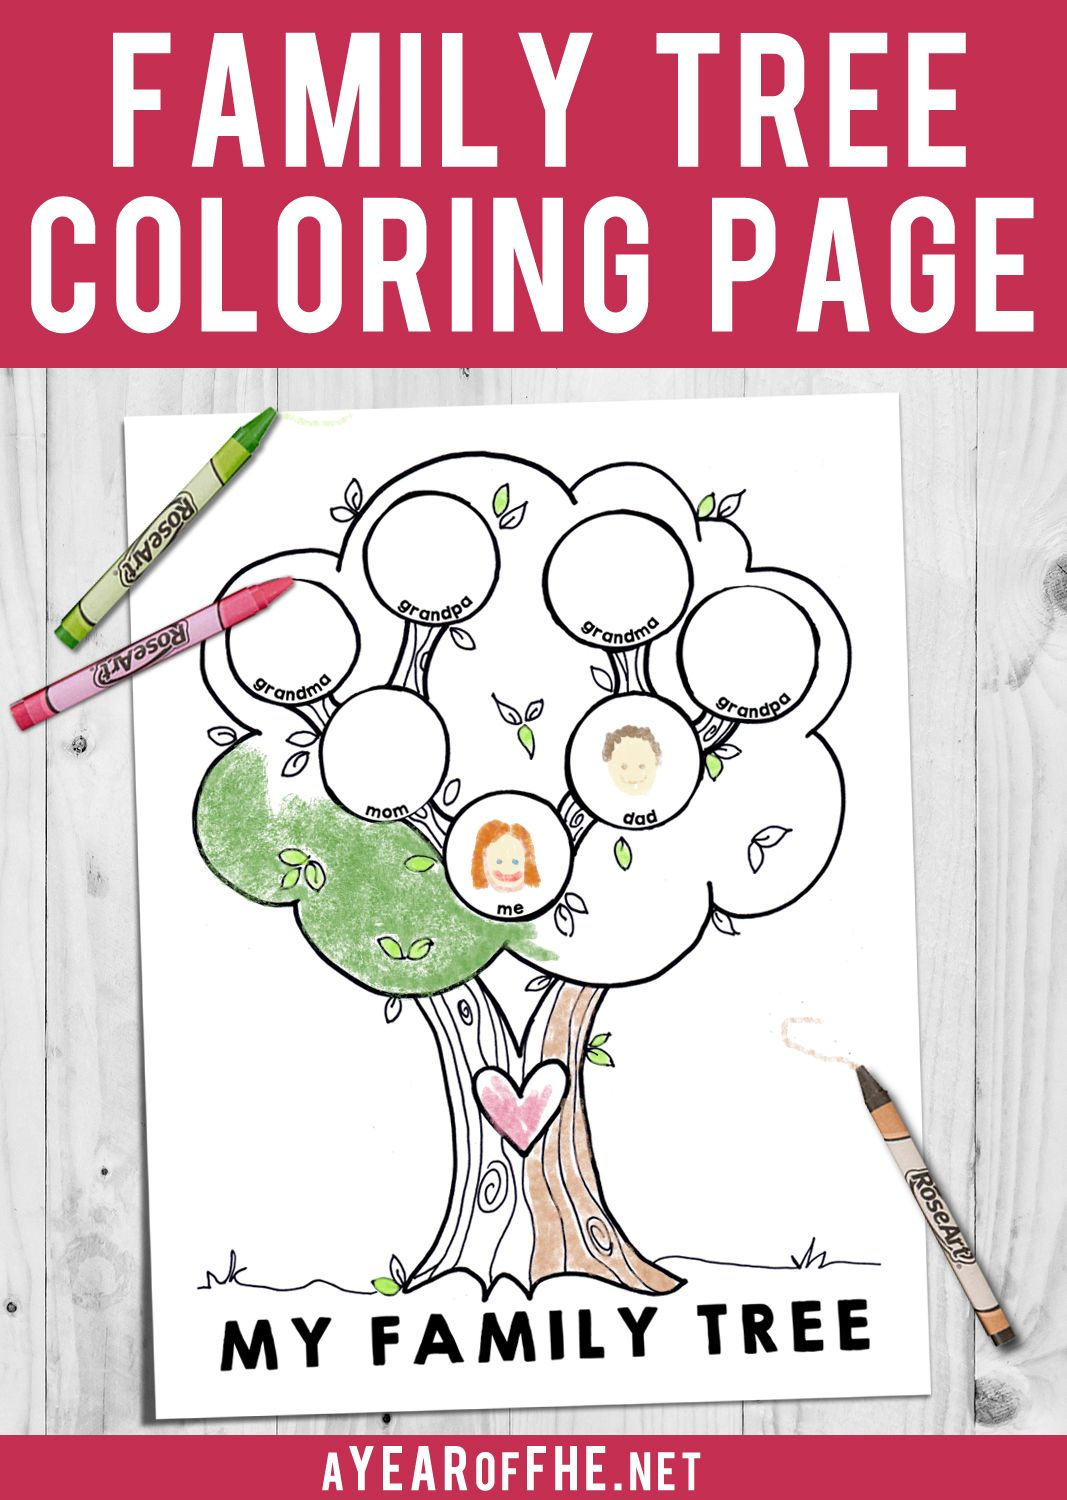 A Year Of FHE FREE LDS COLORING PAGE For Kids To Fill In With